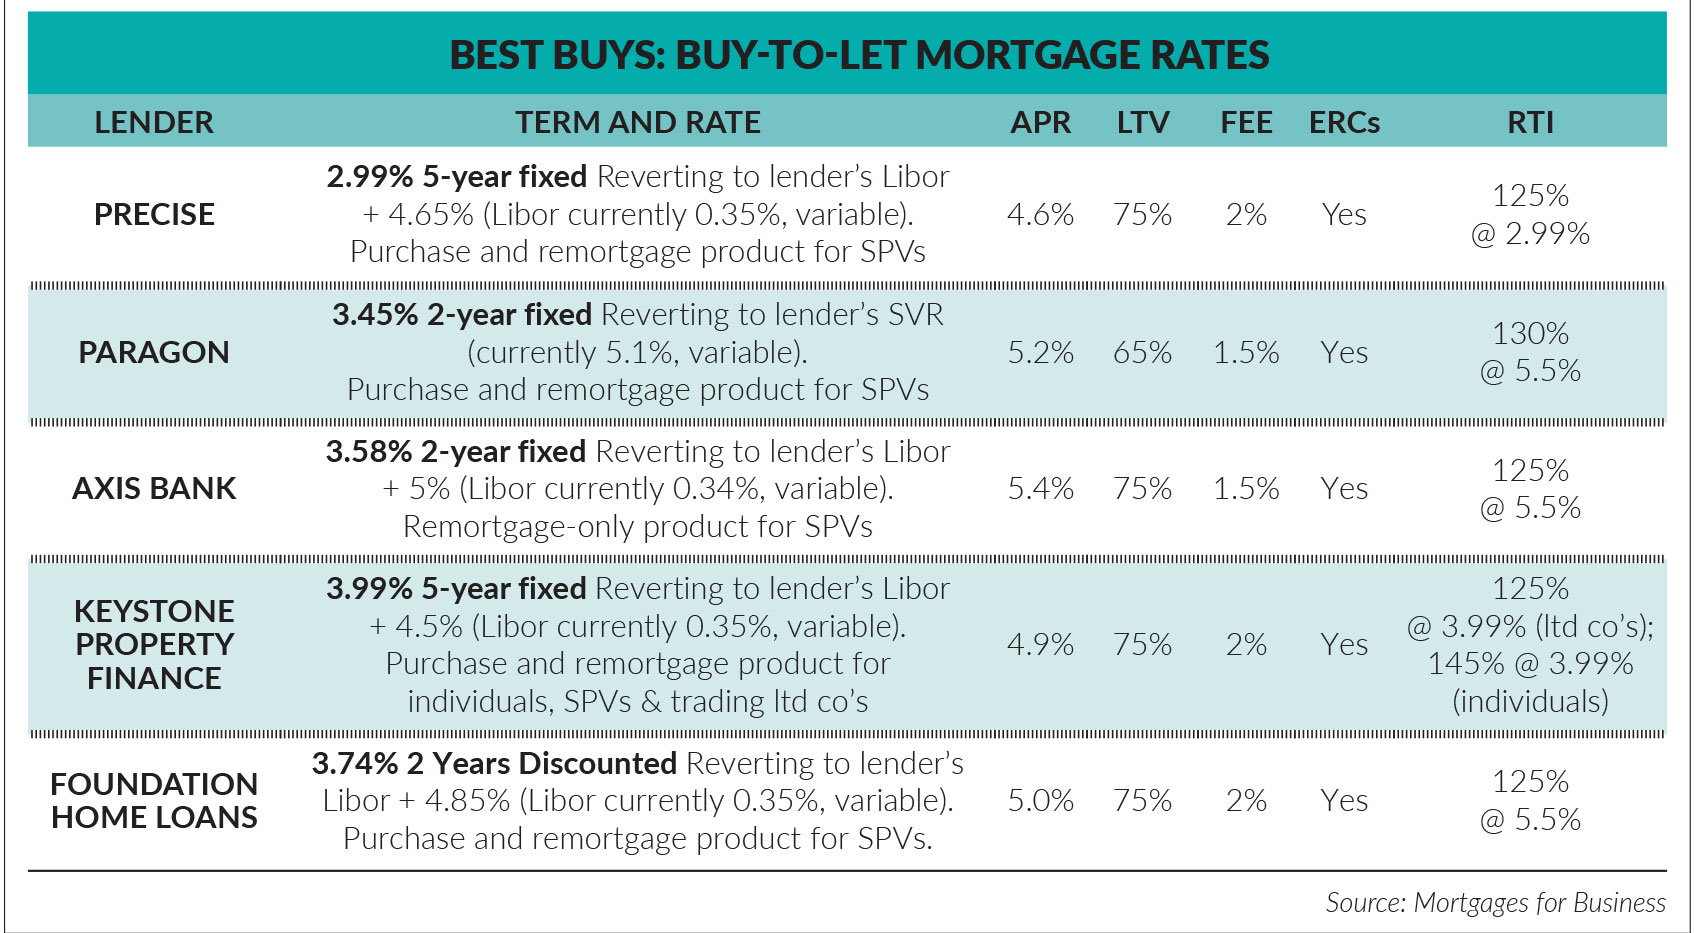 Tax Relief On Buy To Let Properties